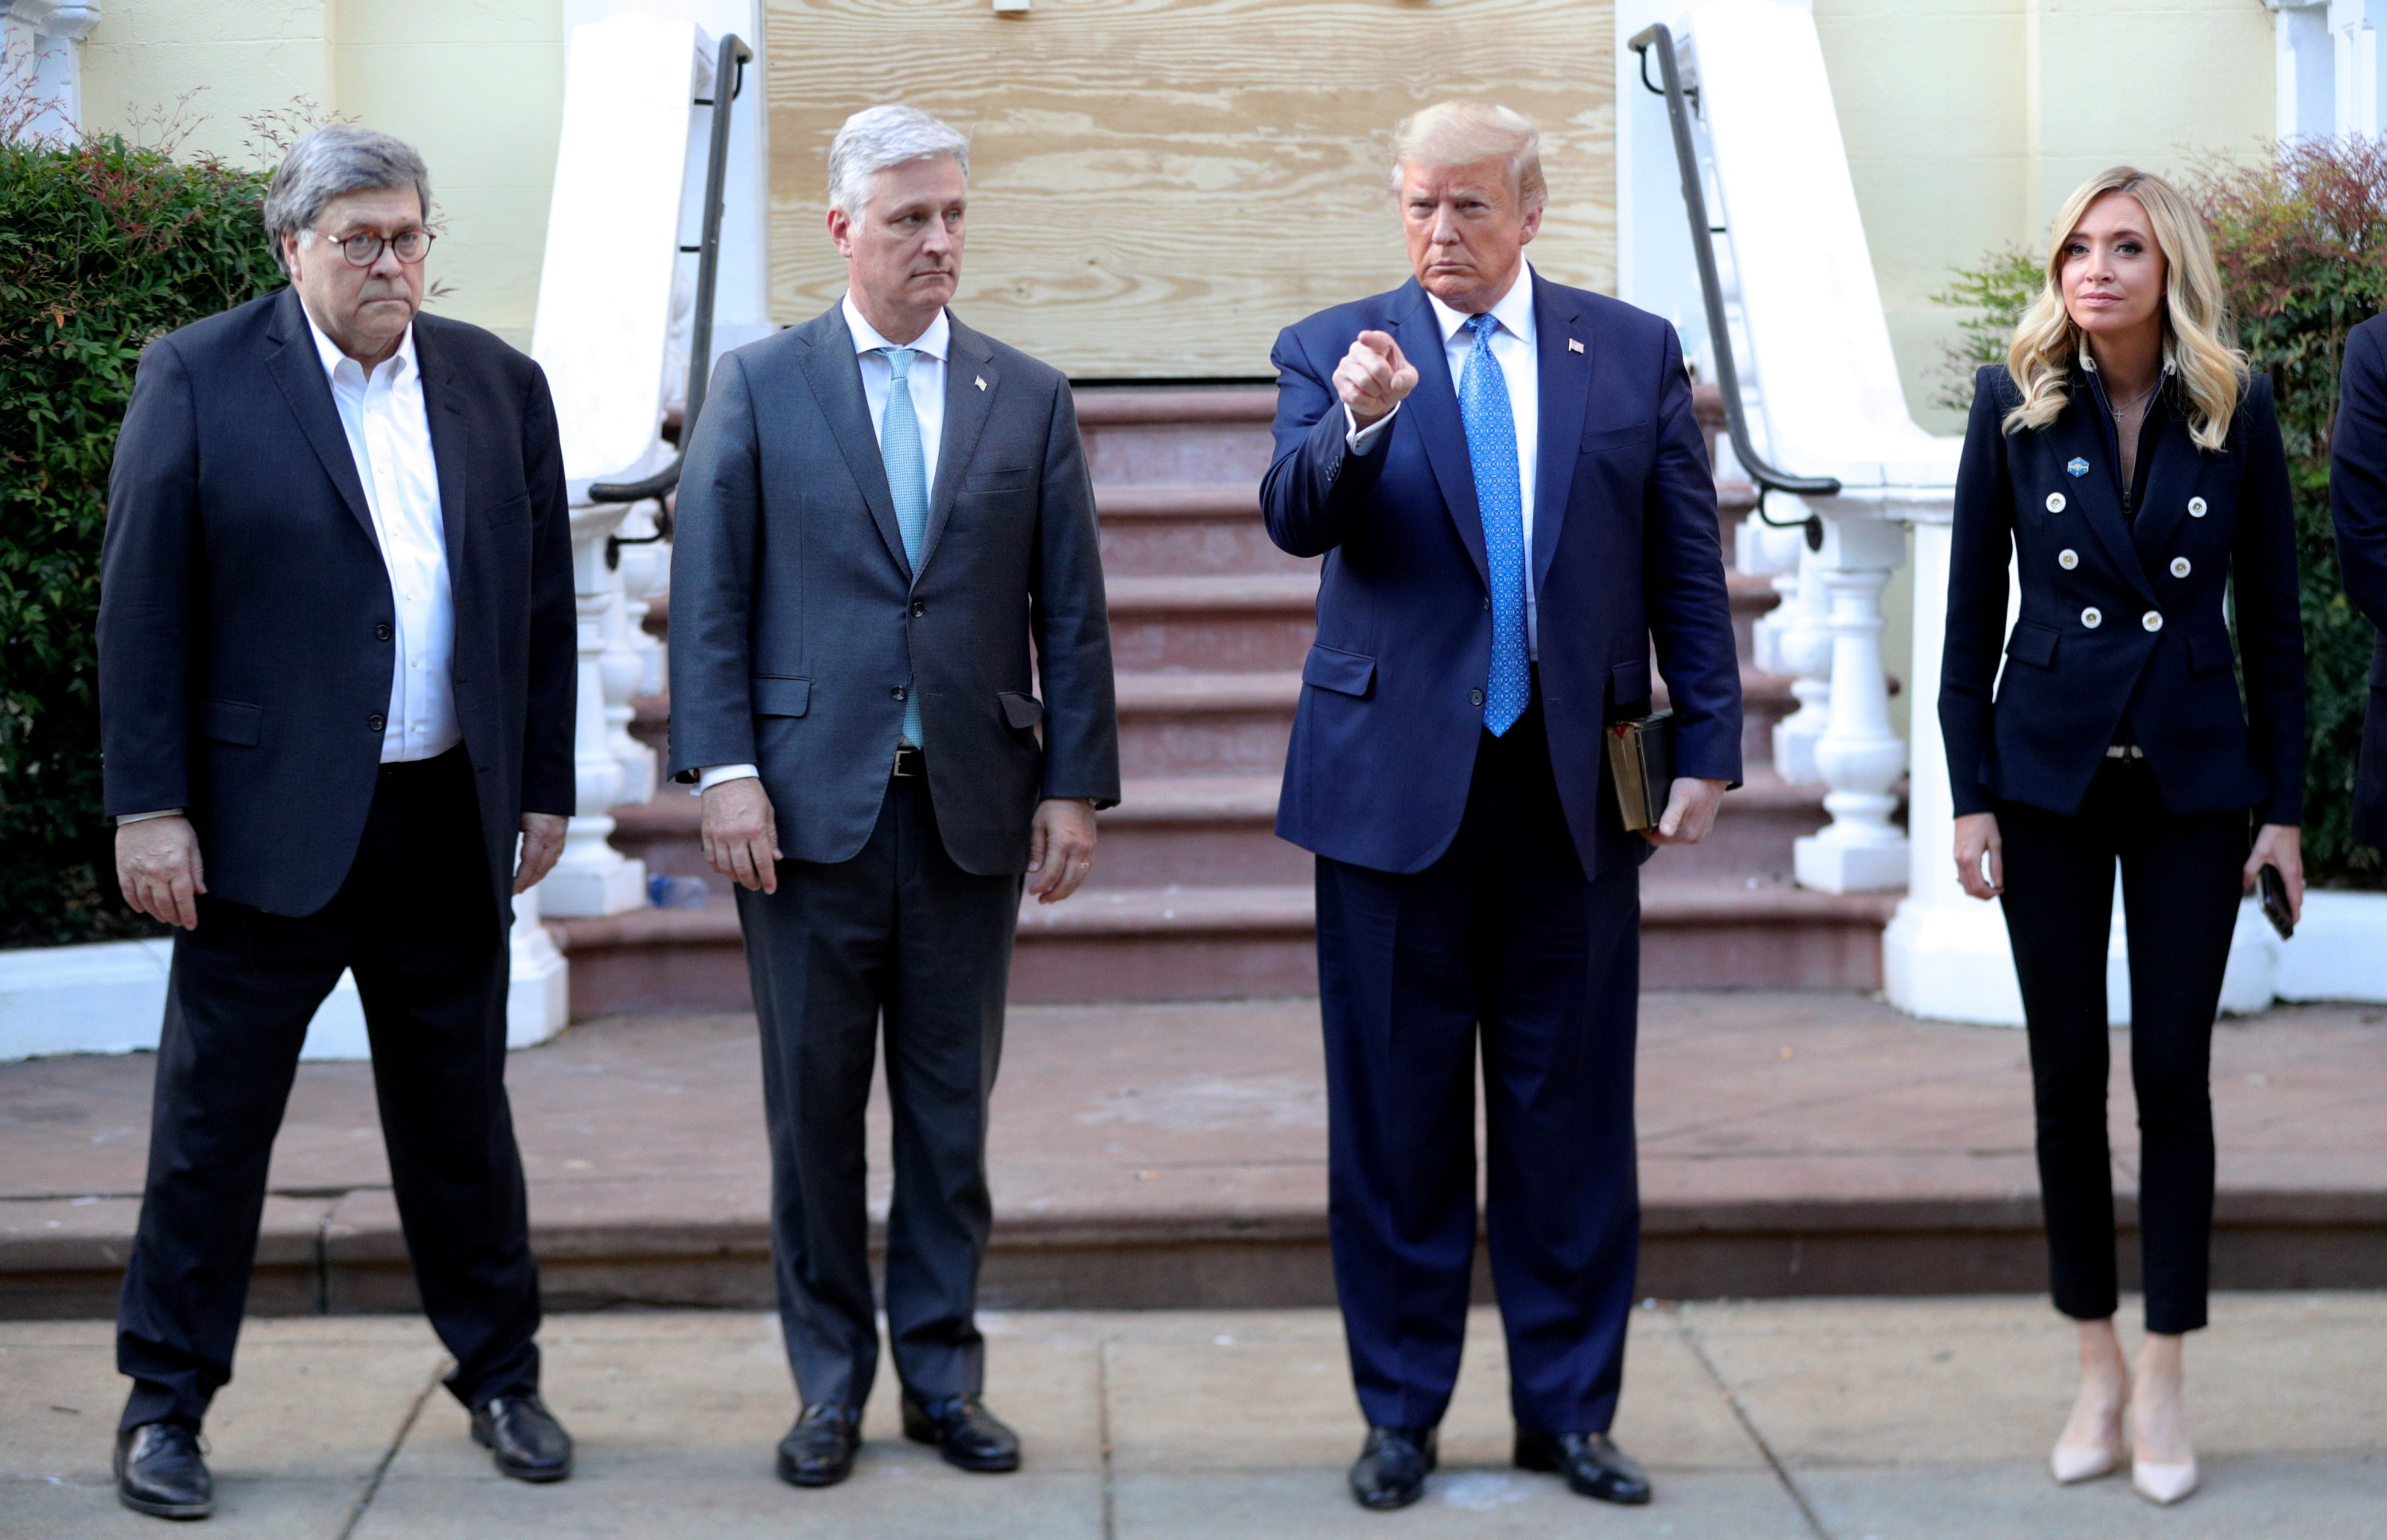 U.S. President Donald Trump stands in front of St. John's Episcopal Church across from the White House with U.S. Attorney General Bill Barr, National Security Advisor Robert O'Brien and White House Press Secretary Kayleigh McEnany after walking there for a photo opportunity in Washington, U.S., June 1, 2020. (Reuters Photo)